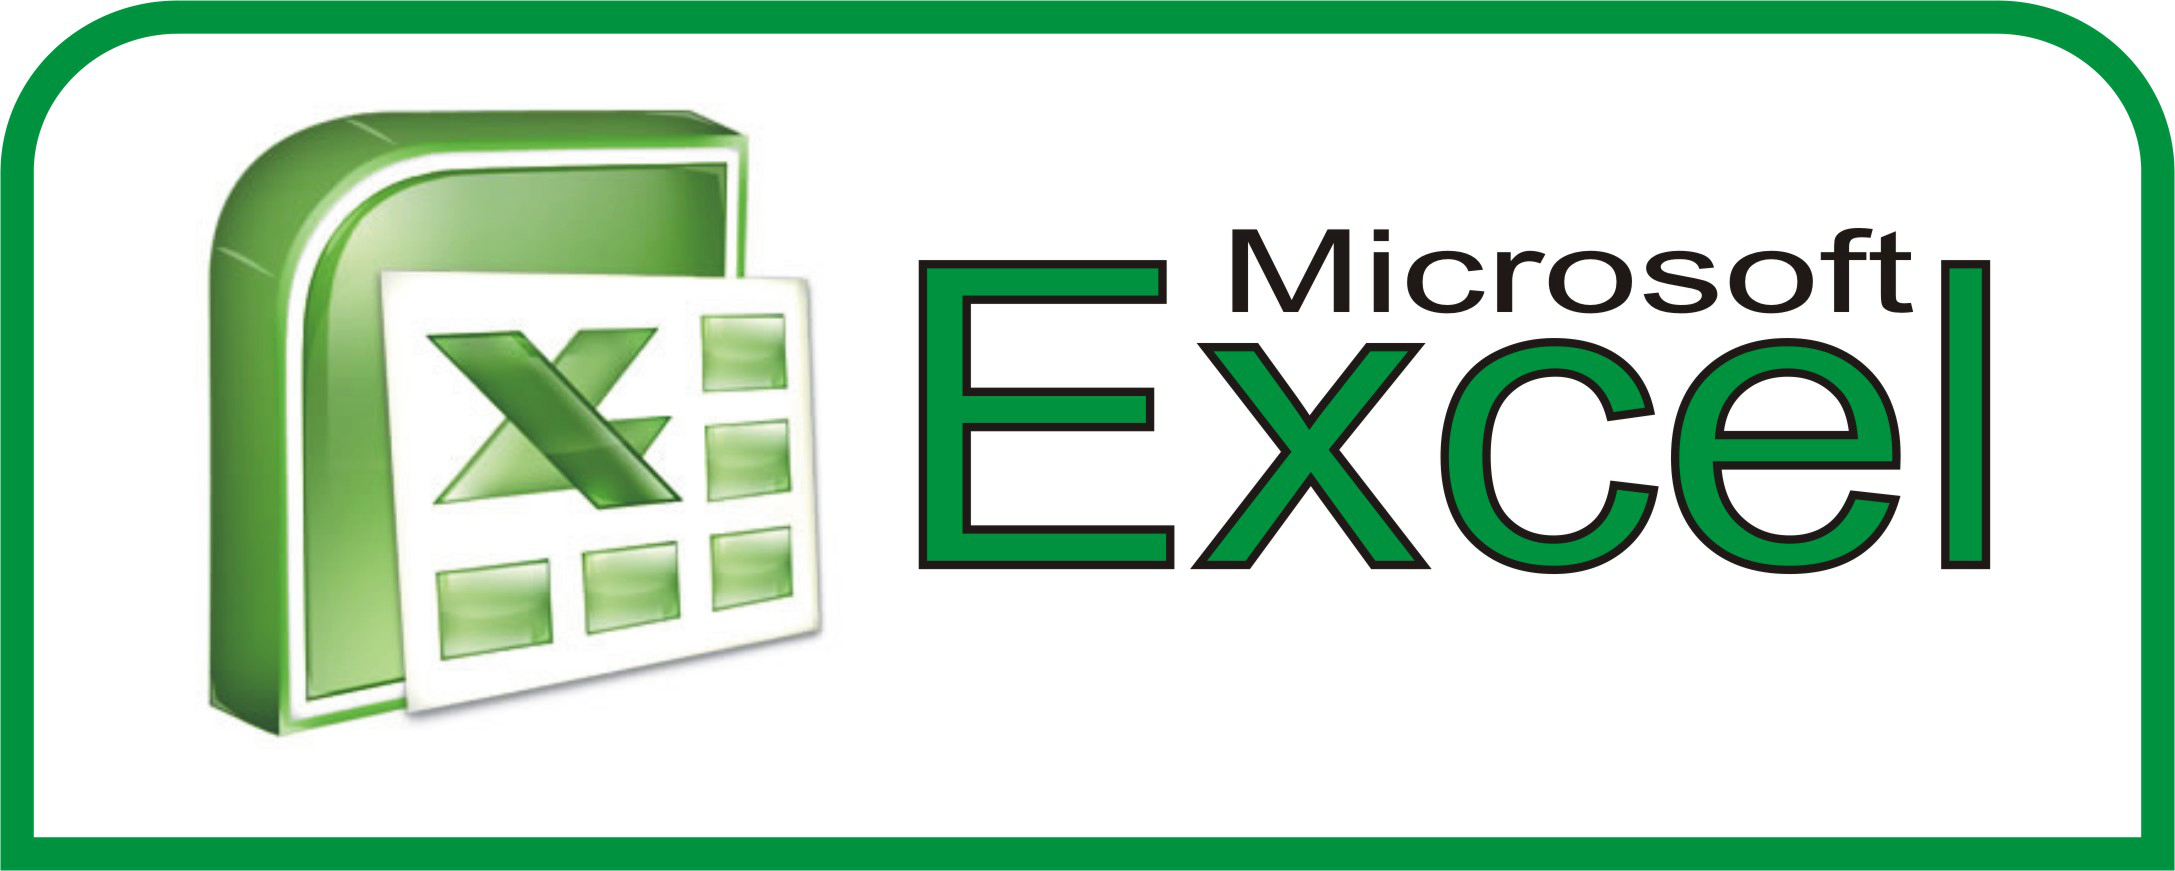 Ediblewildsus  Wonderful  Excel Shortcuts You Probably Didnt Know About  Techdissected With Handsome Excel Match Example Besides Excel Energy My Account Furthermore Excel Insert Table With Extraordinary How Do I Do A Vlookup In Excel Also Merge Spreadsheets In Excel  In Addition Mortgage Calculation In Excel And Excel Formula String As Well As How To Create Graphs On Excel Additionally Excel With Vba From Techdissectedcom With Ediblewildsus  Handsome  Excel Shortcuts You Probably Didnt Know About  Techdissected With Extraordinary Excel Match Example Besides Excel Energy My Account Furthermore Excel Insert Table And Wonderful How Do I Do A Vlookup In Excel Also Merge Spreadsheets In Excel  In Addition Mortgage Calculation In Excel From Techdissectedcom